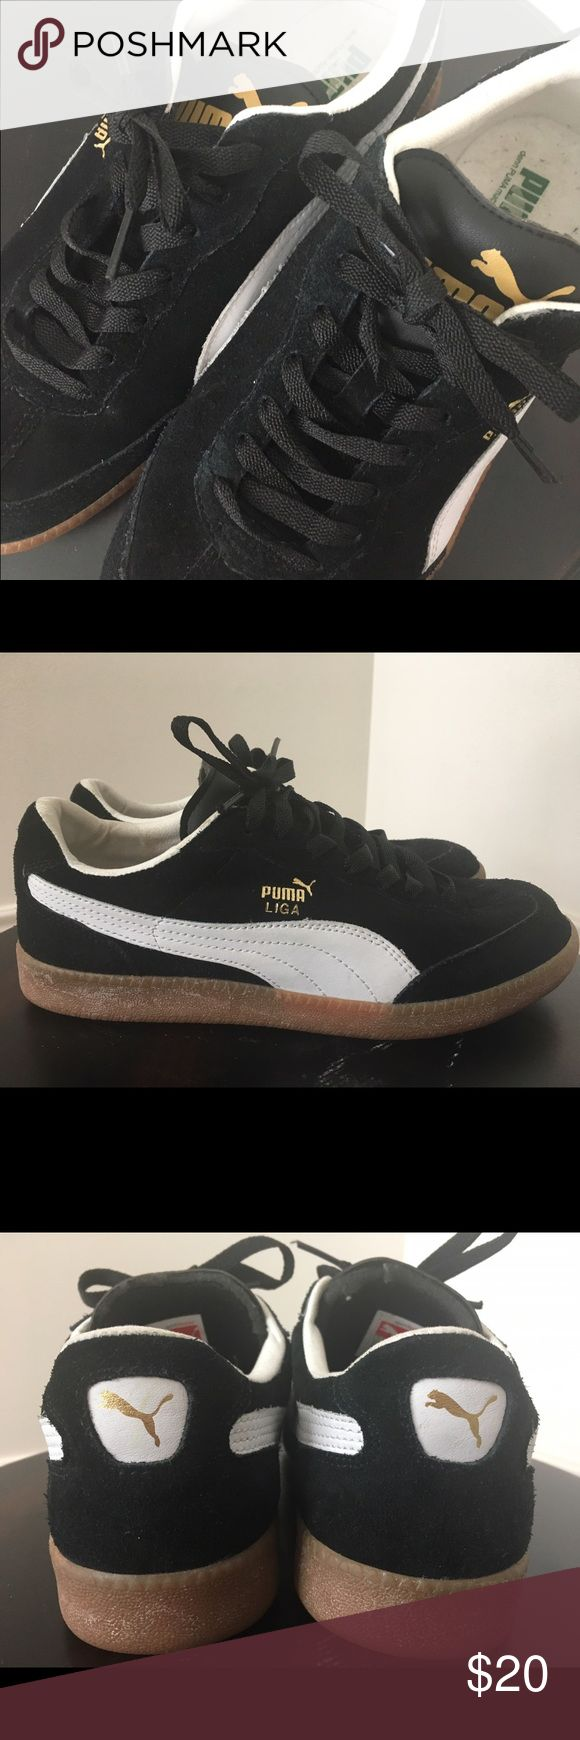 Puma Liga Sneakers Black suede Puma Liga sneakers.  Size men's US 8.  Heel to toe measure approximately 11 inches. Worn 1 or 2 times. Shows very little wear. Leather upper and rubber sole. Puma Shoes Athletic Shoes